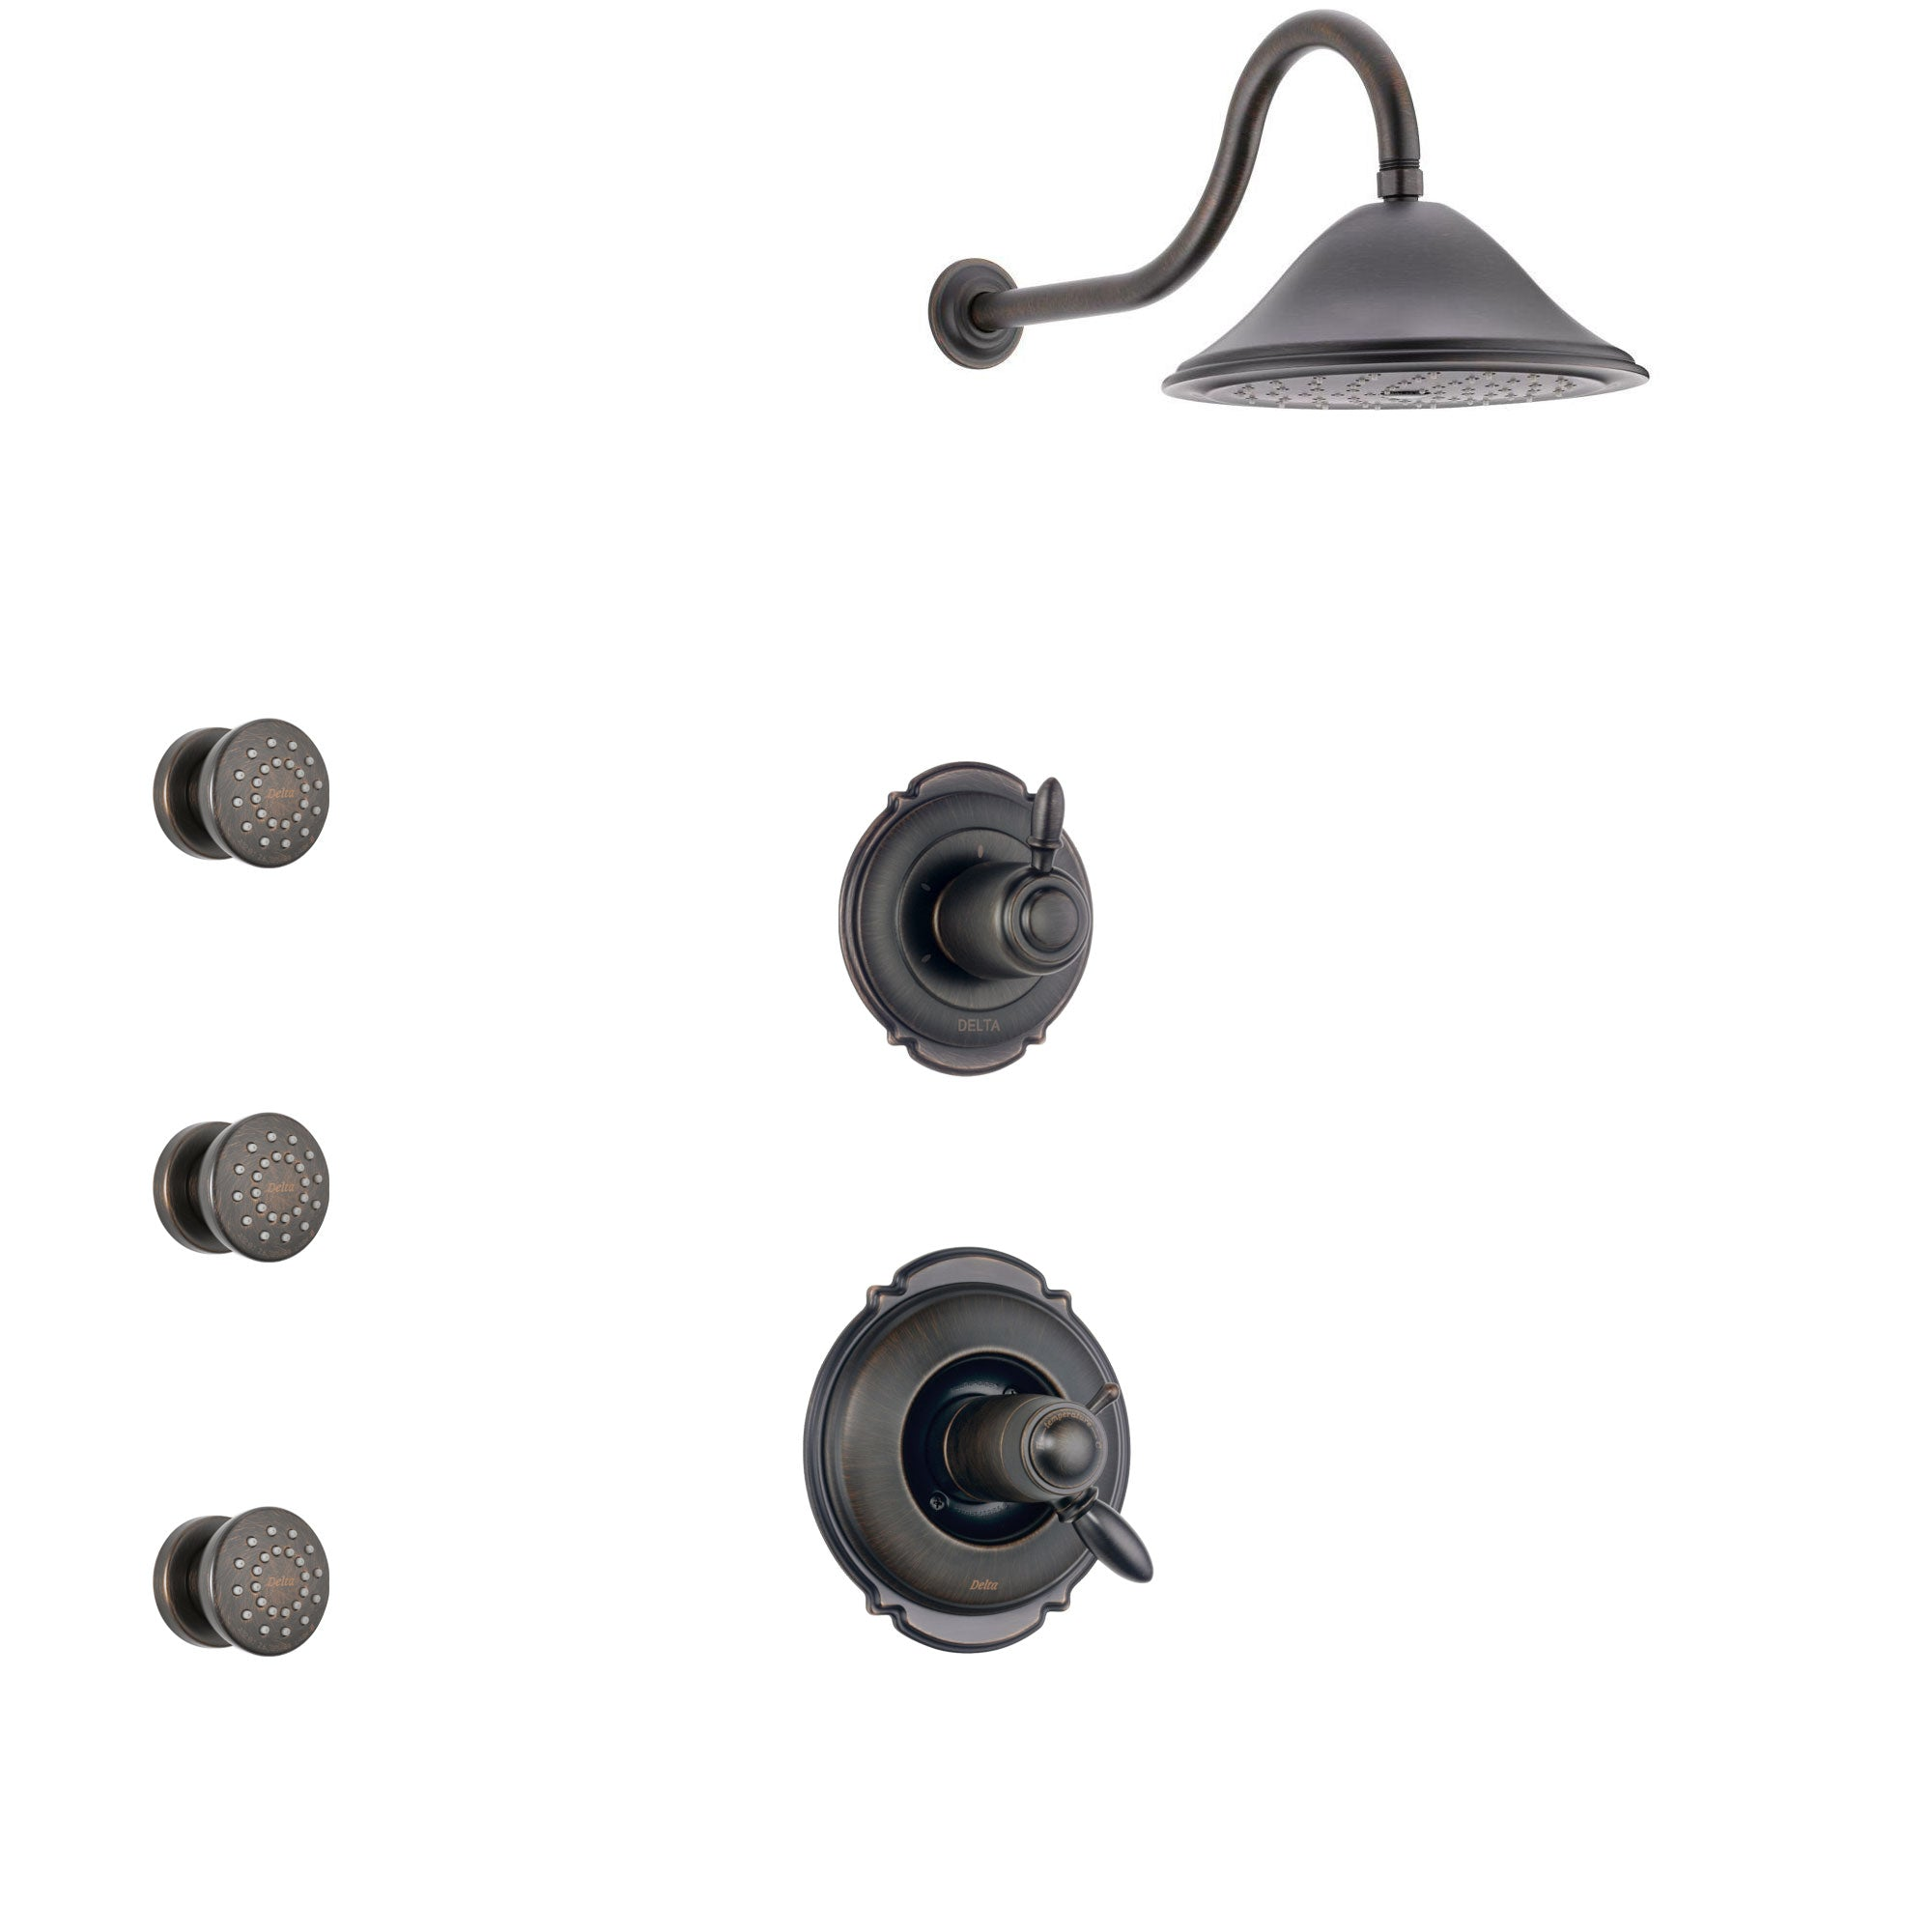 Delta Victorian Venetian Bronze Shower System with Dual Thermostatic Control Handle, 3-Setting Diverter, Showerhead, and 3 Body Sprays SS17T551RB1